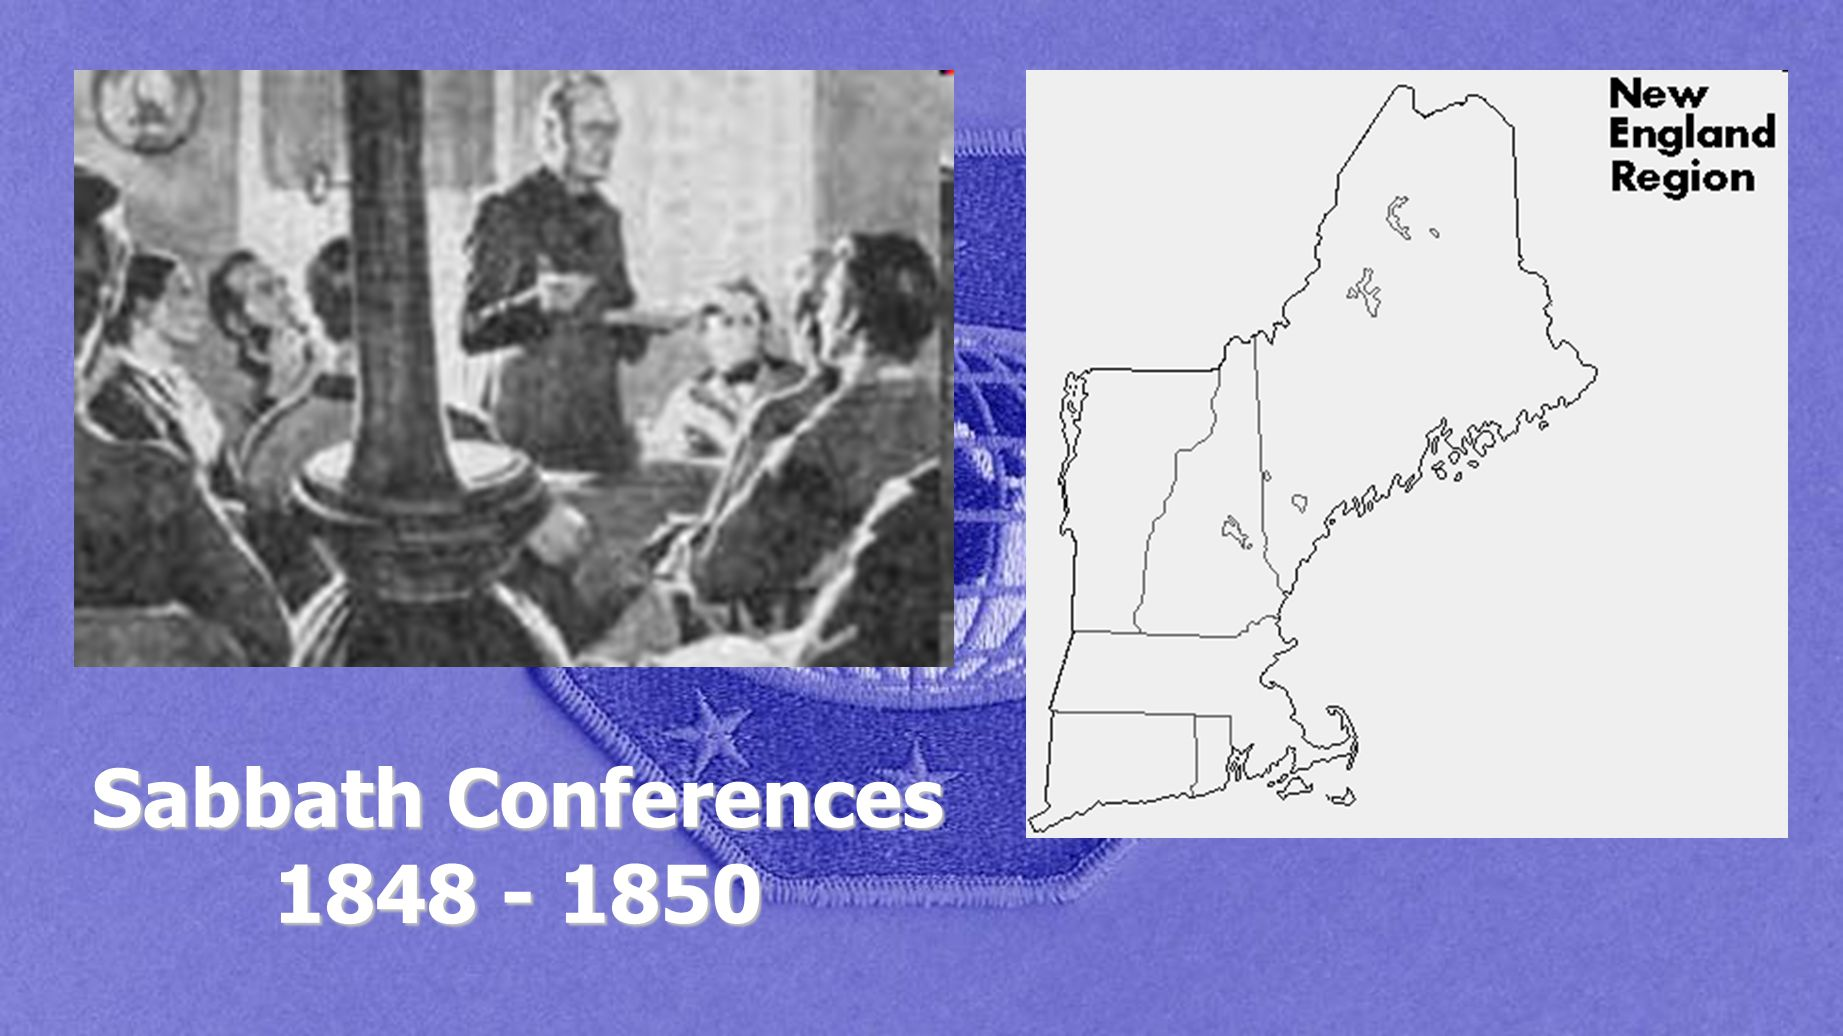 Sabbath Conferences 1848 - 1850